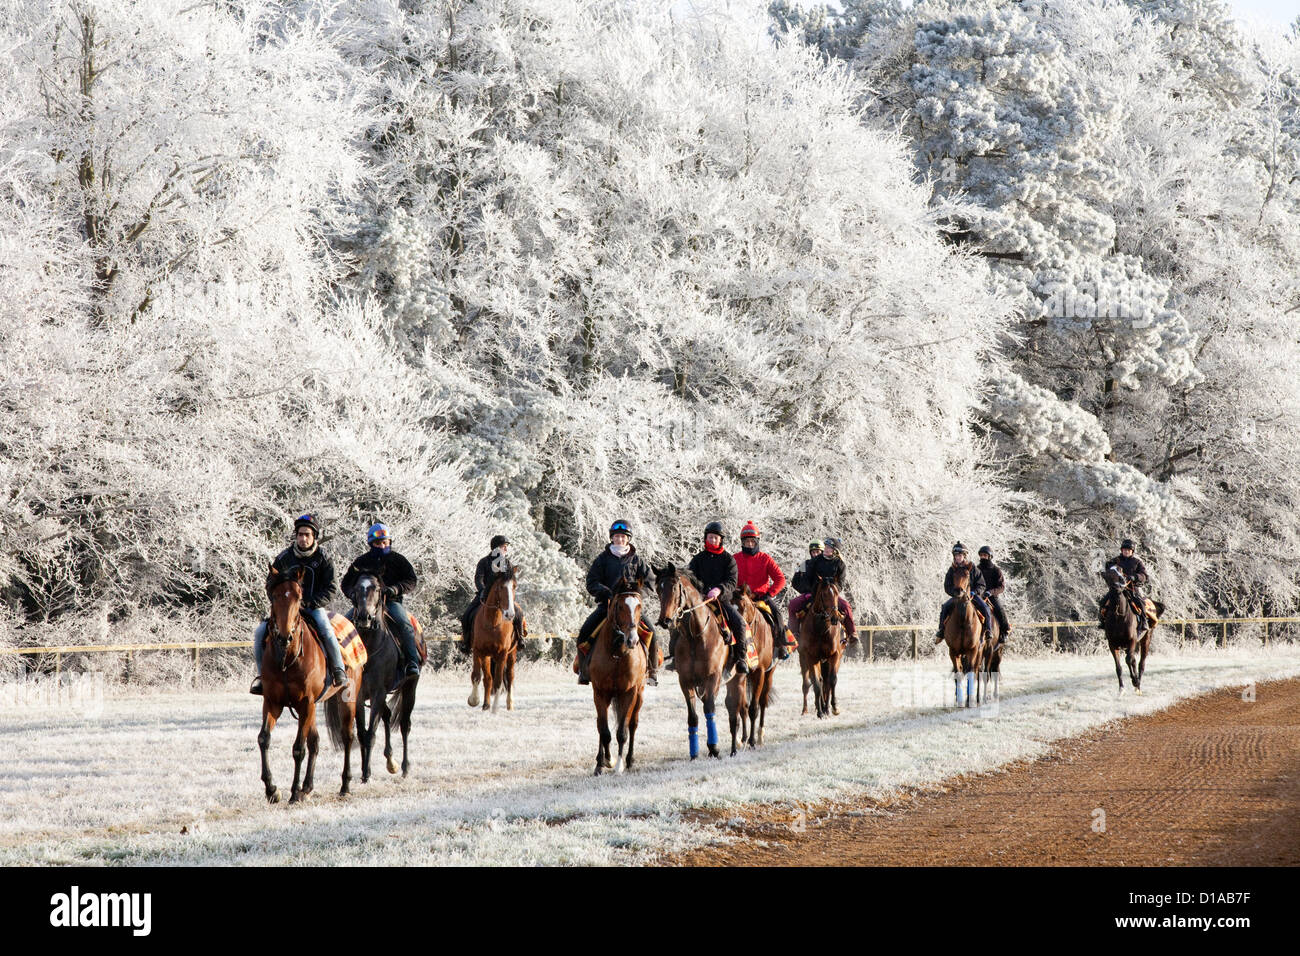 horses-and-jockeys-riding-on-a-frosty-wi